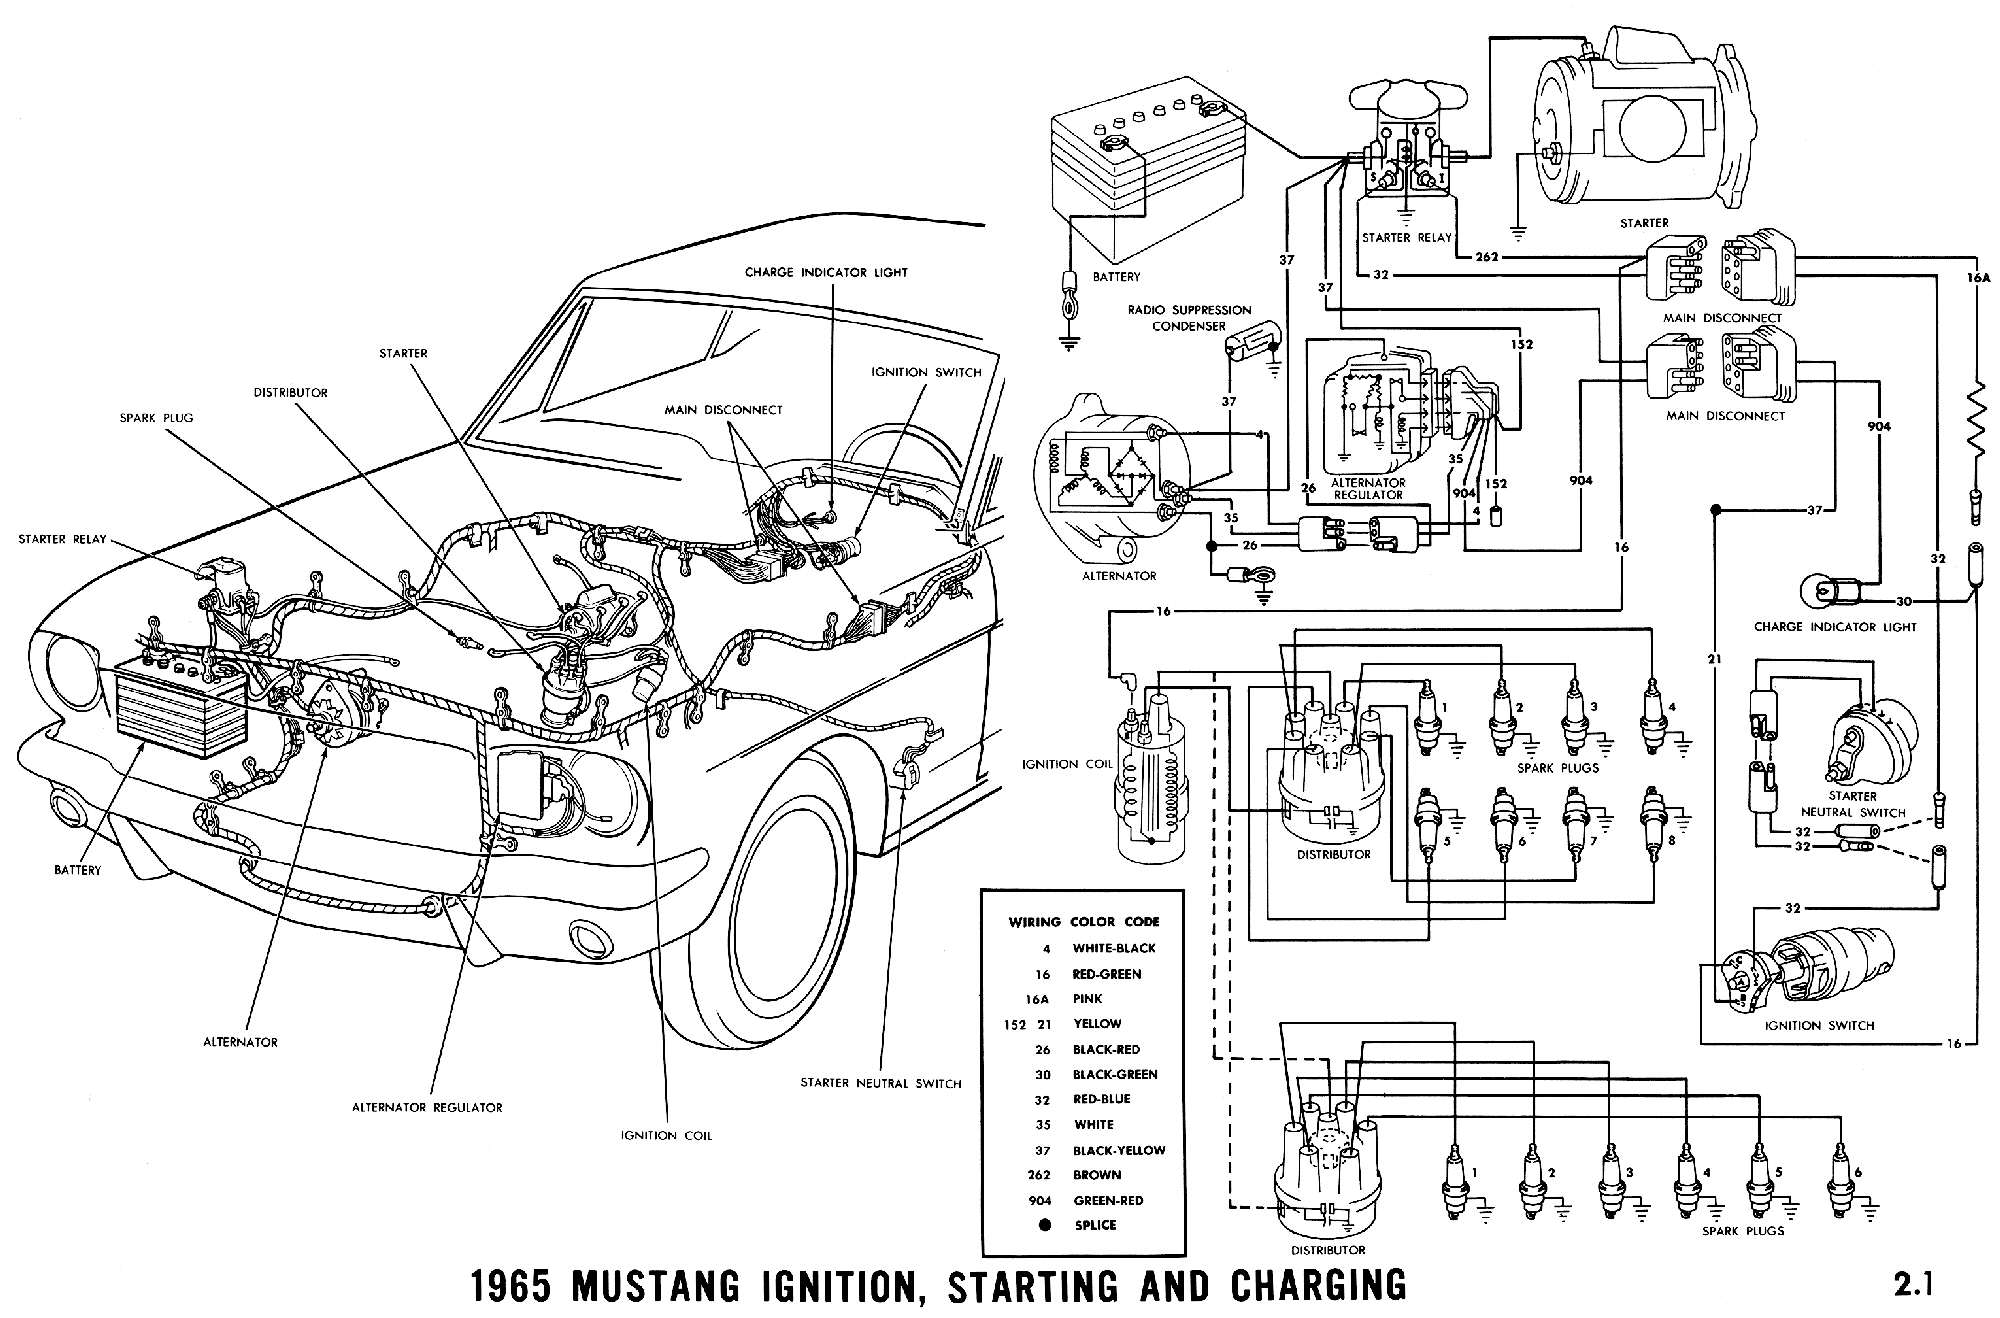 WRG-0912] 1967 Ford Mustang Dash Wiring on 68 mustang fuse panel diagram, 68 mustang horn wiring diagram, 68 mustang alternator wiring diagram, 68 mustang brake pedal diagram,